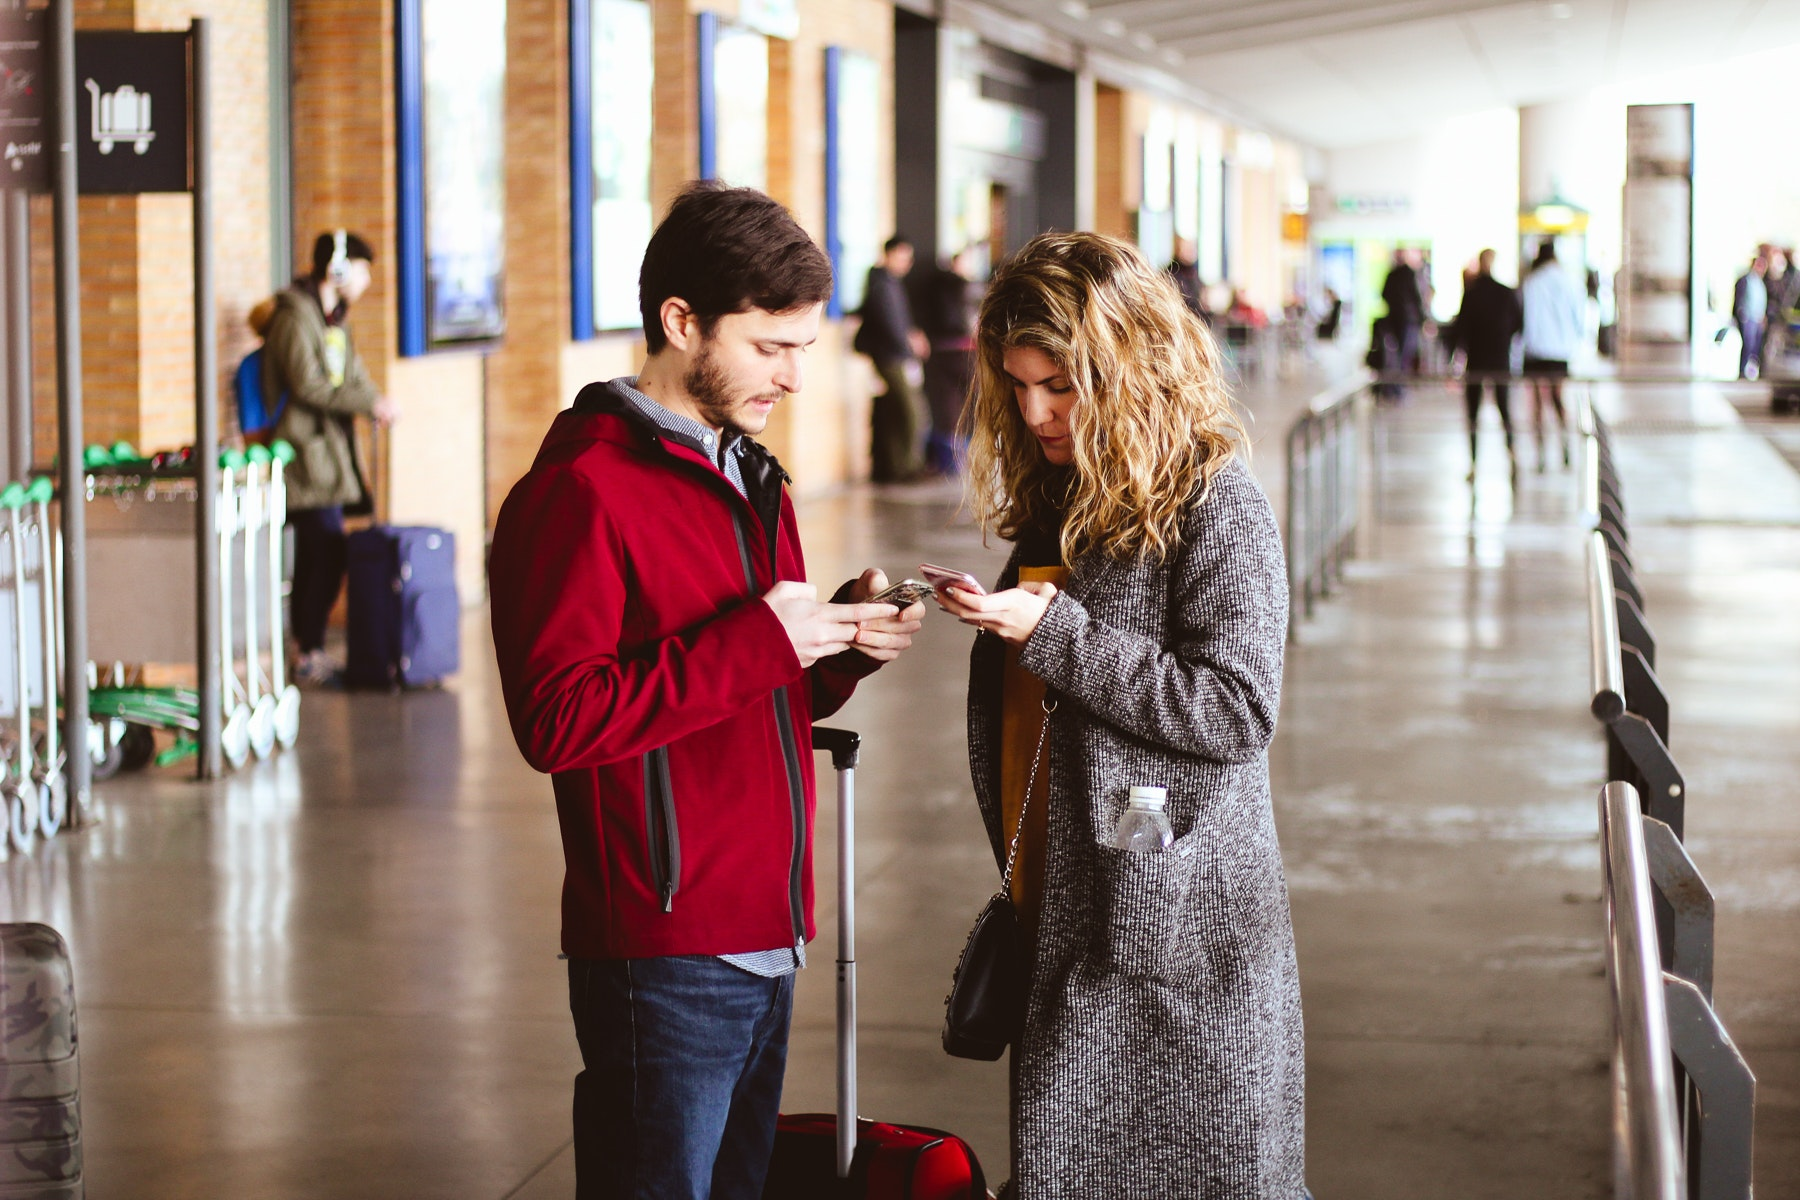 Photo of man and woman using their phones